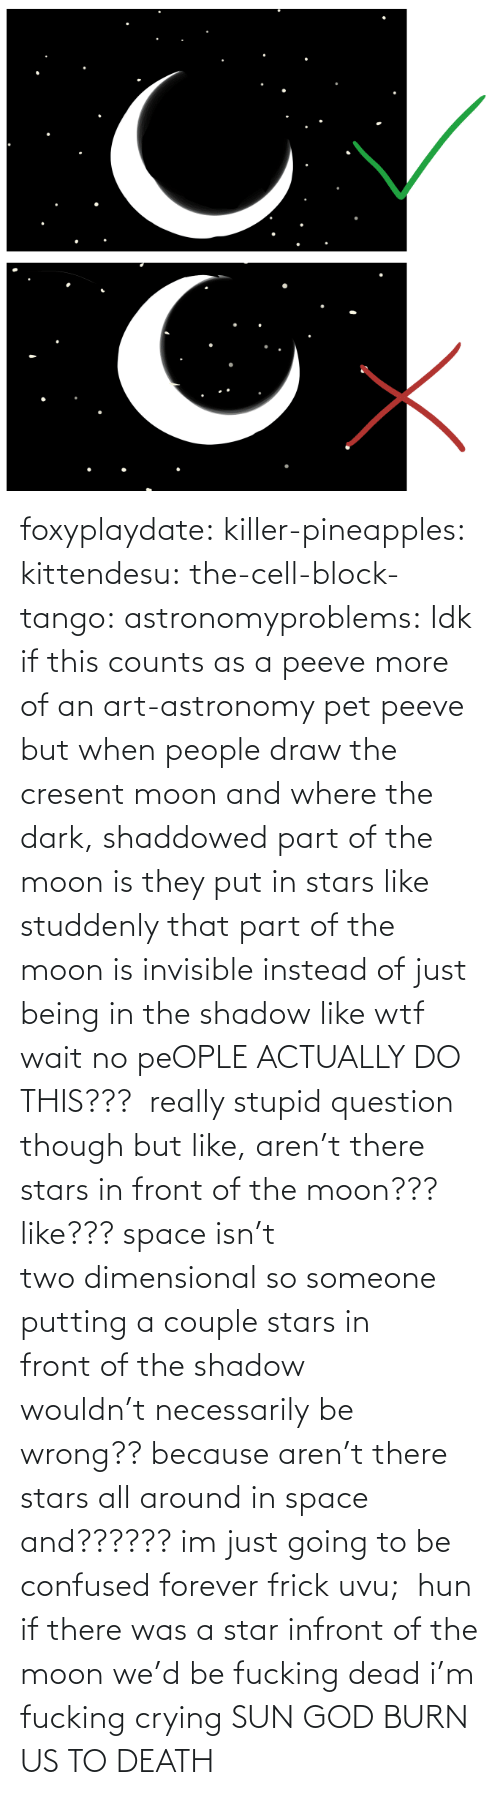 pet: foxyplaydate: killer-pineapples:  kittendesu:  the-cell-block-tango:  astronomyproblems:  Idk if this counts as a peeve more of an art-astronomy pet peeve but when people draw the cresent moon and where the dark, shaddowed part of the moon is they put in stars like studdenly that part of the moon is invisible instead of just being in the shadow like wtf  wait no peOPLE ACTUALLY DO THIS???   really stupid question though but like, aren't there stars in front of the moon??? like??? space isn't two dimensional so someone putting a couple stars in front of the shadow wouldn't necessarily be wrong?? because aren't there stars all around in space and?????? im just going to be confused forever frick uvu;   hun if there was a star infront of the moon we'd be fucking dead  i'm fucking crying    SUN GOD BURN US TO DEATH